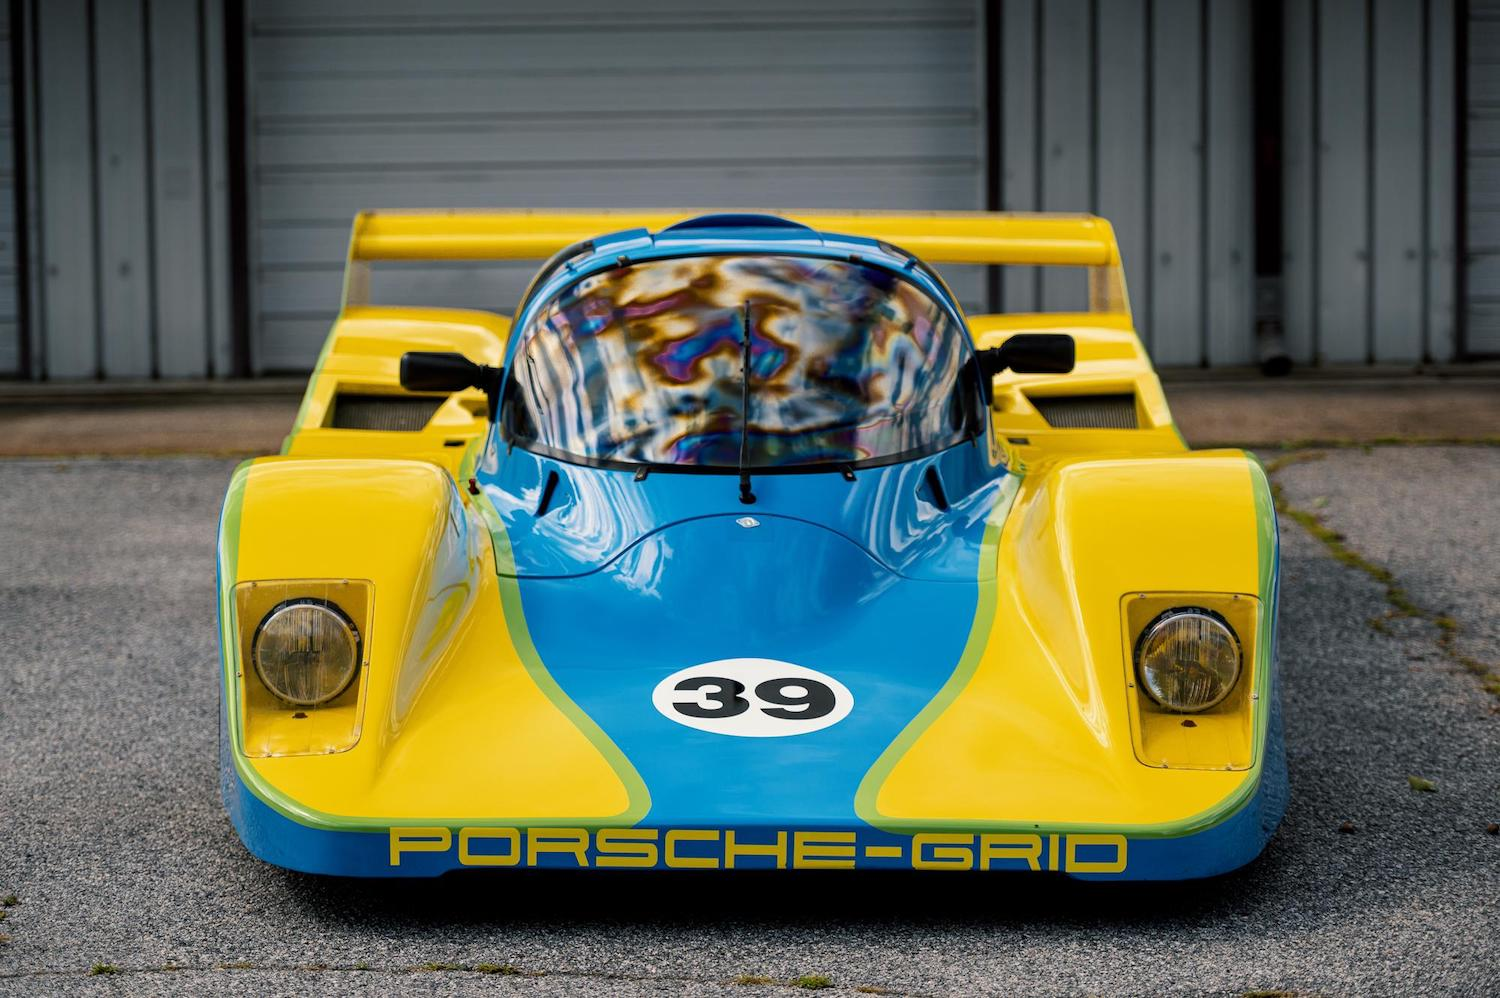 Snag this offbeat Group C car for Porsche power, British roots, and Le Mans allure